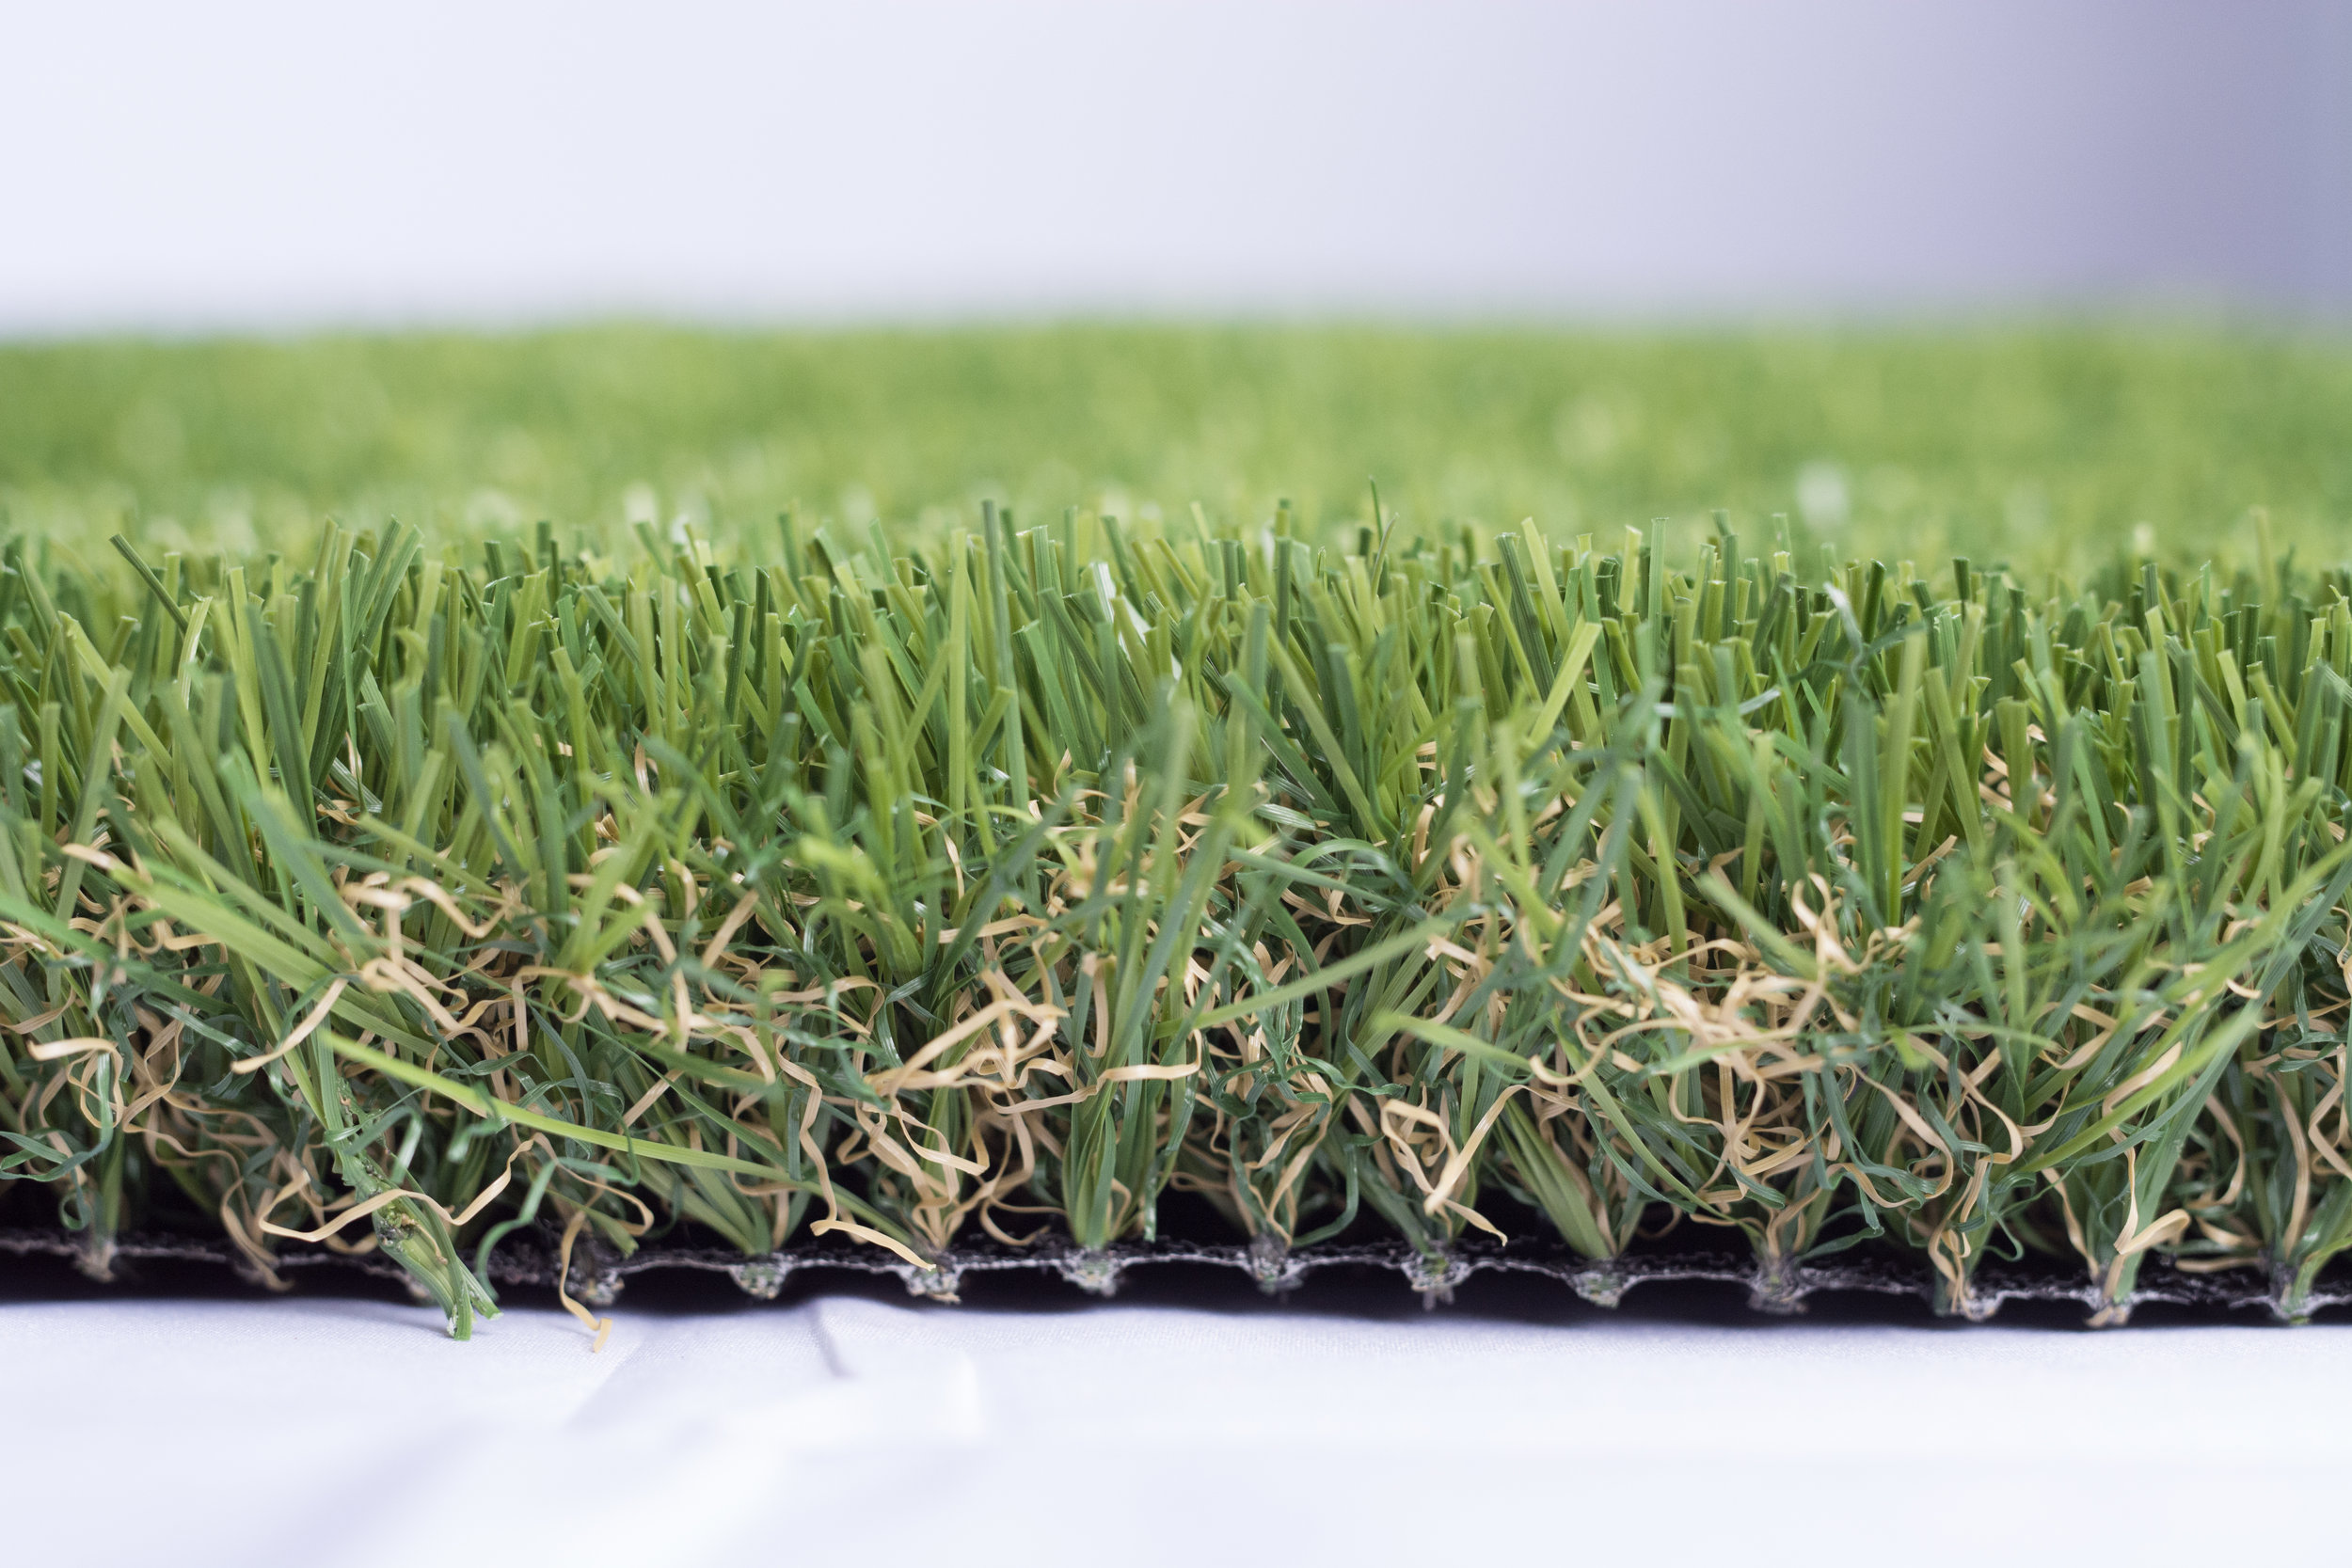 Grand Grass Pro - Grand Grass Pro is our most soft grass. It is popular for back yard play areas.PropertiesFibre colour: Forest & LimeThatch colour: Green & BrownPile height: 1.75